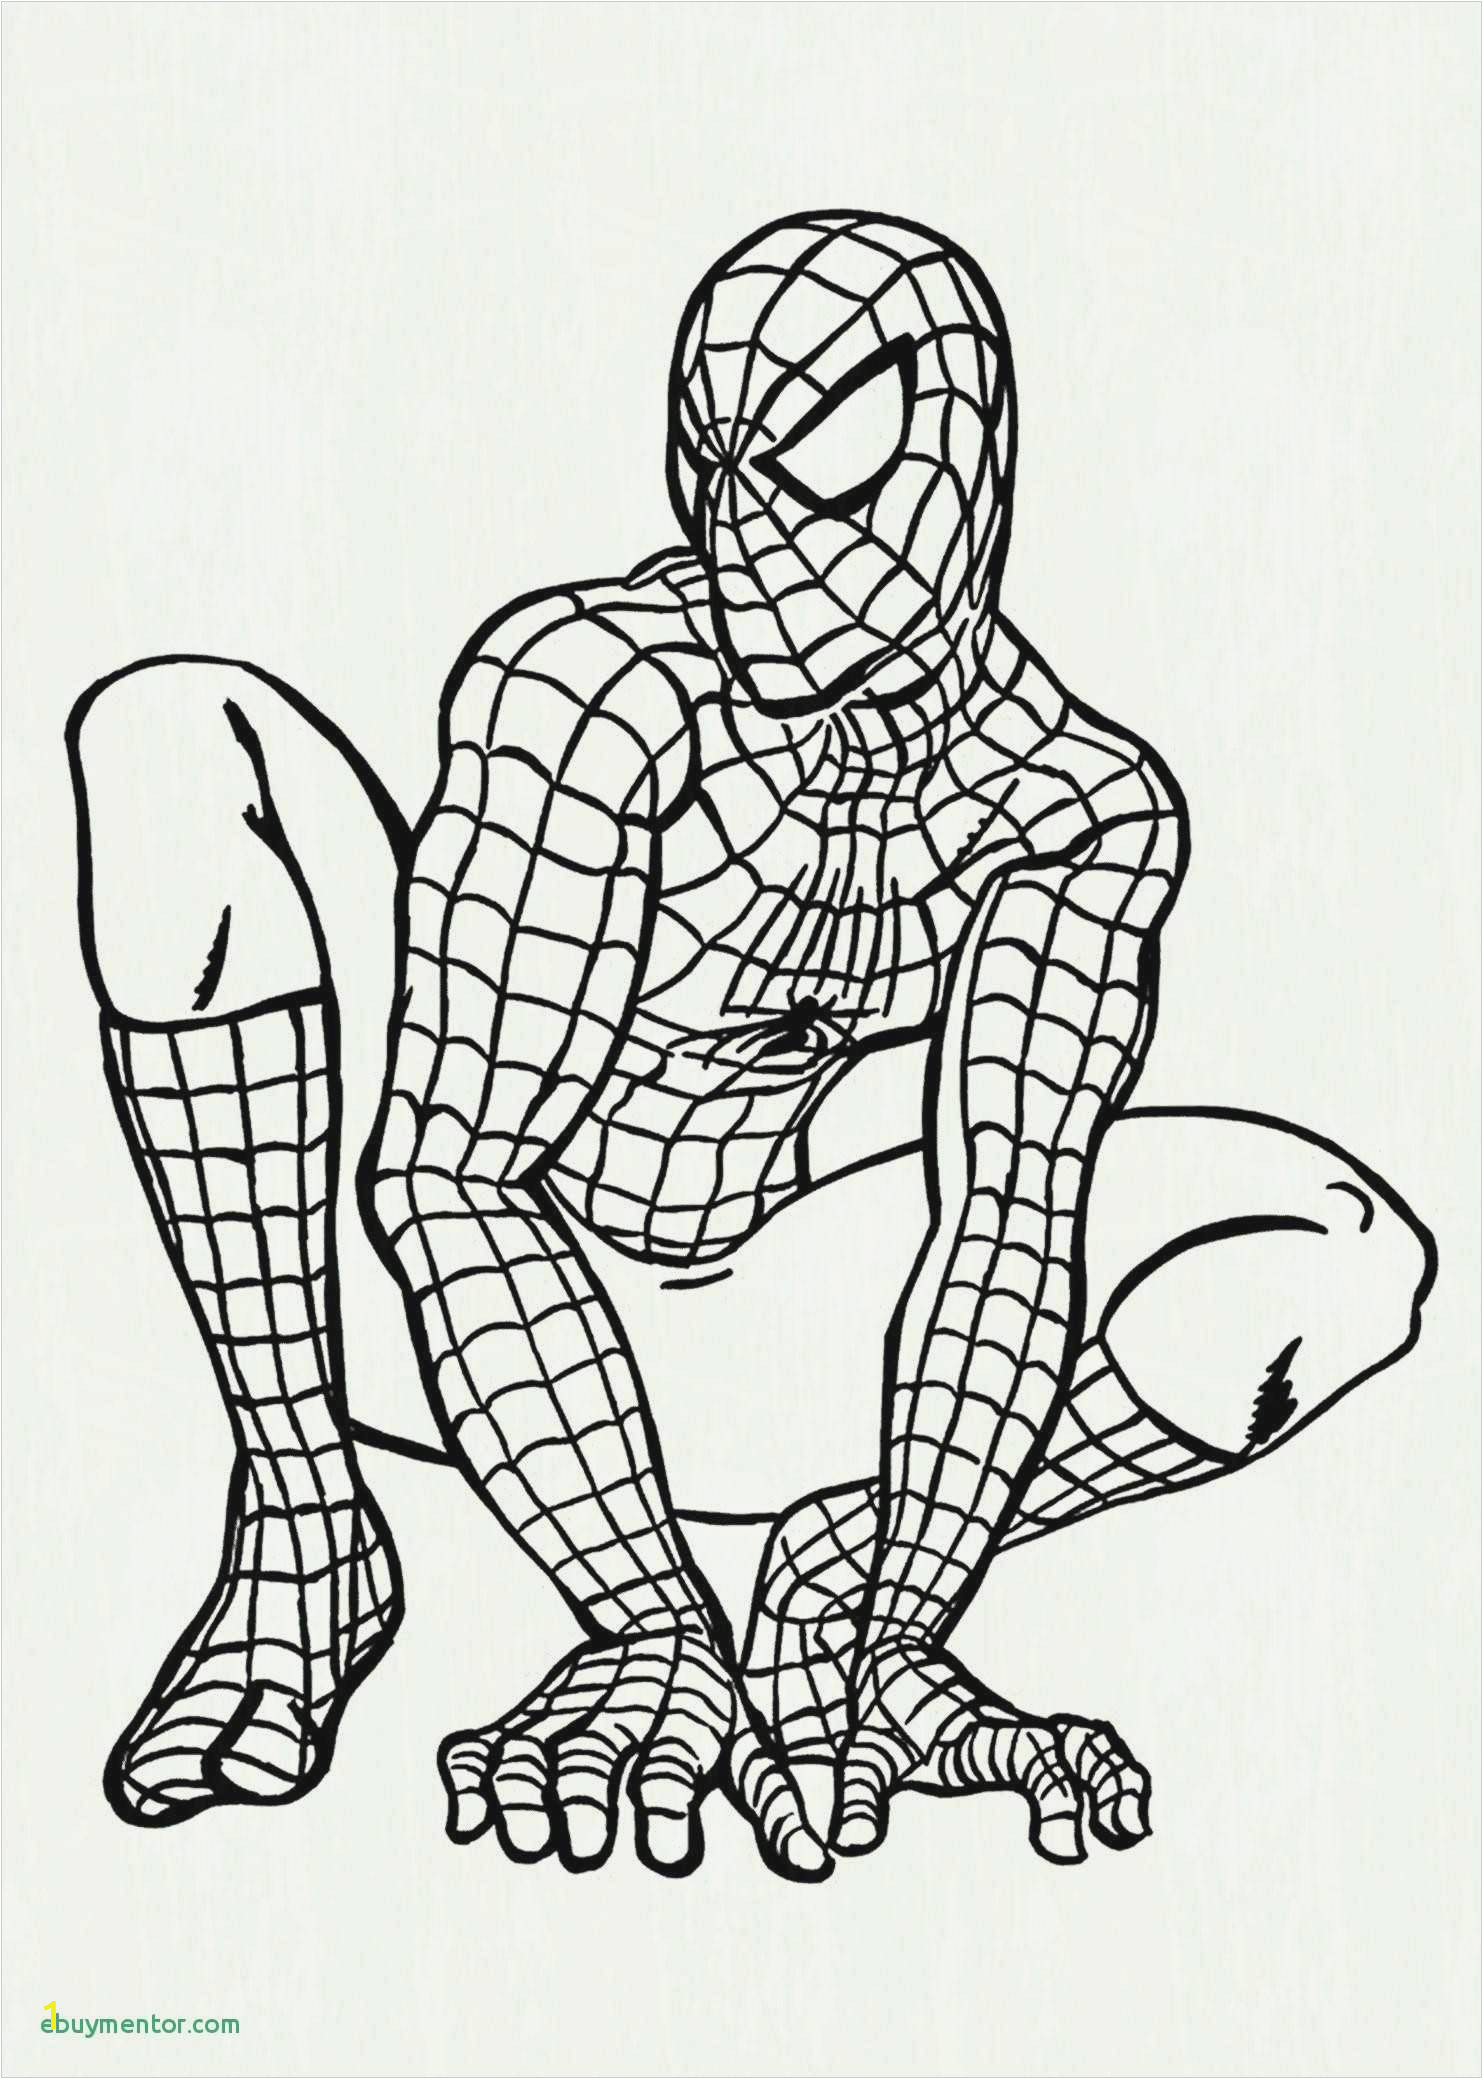 coloring pages ideas superhero to print free printable amazing spider girl page wpart co figure lego spectacular verse funko pop man into the marvel rising gwen stacy